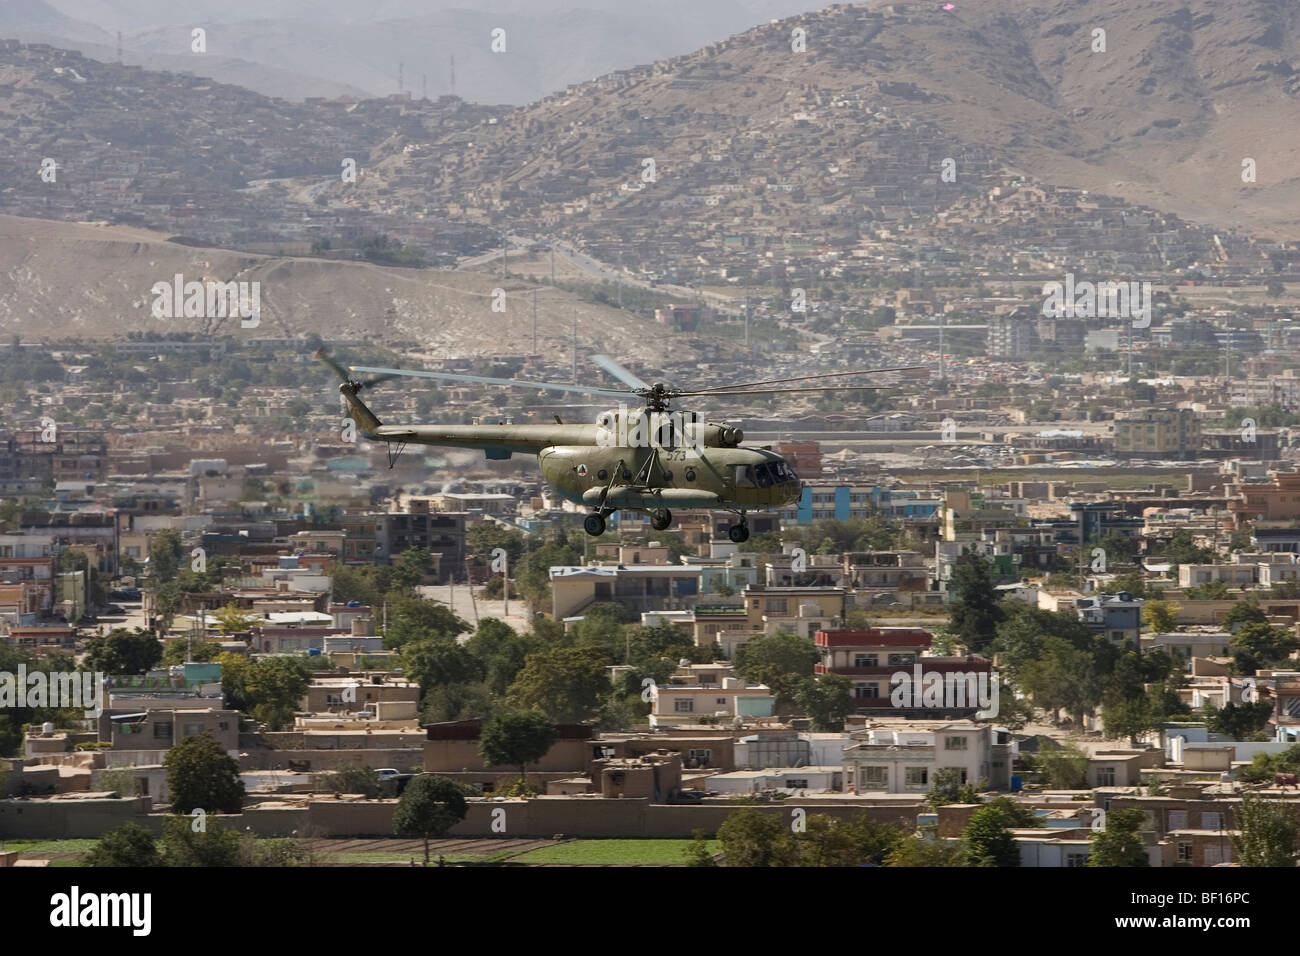 NATO ISAF helicopter flies over the city of Kabul Afghanistan on routine mission - Stock Image